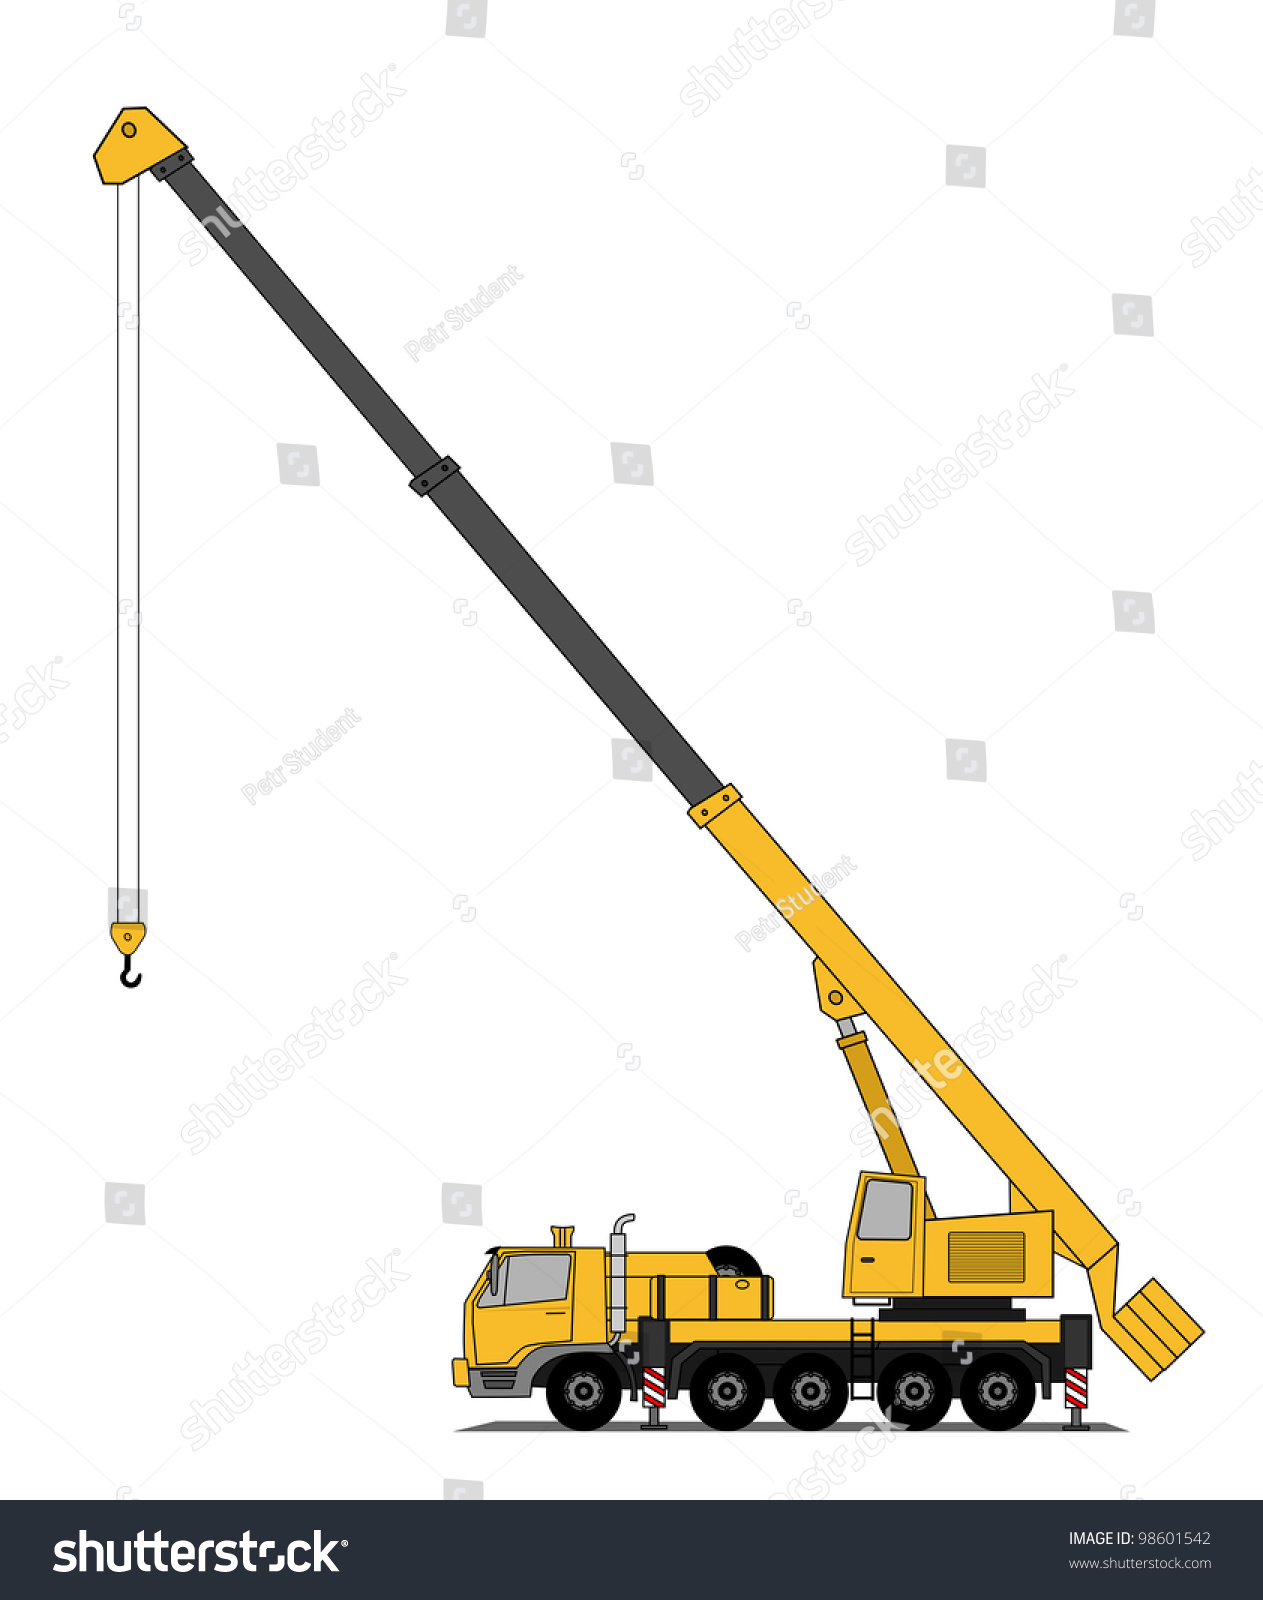 how to become a journeyman crane operator